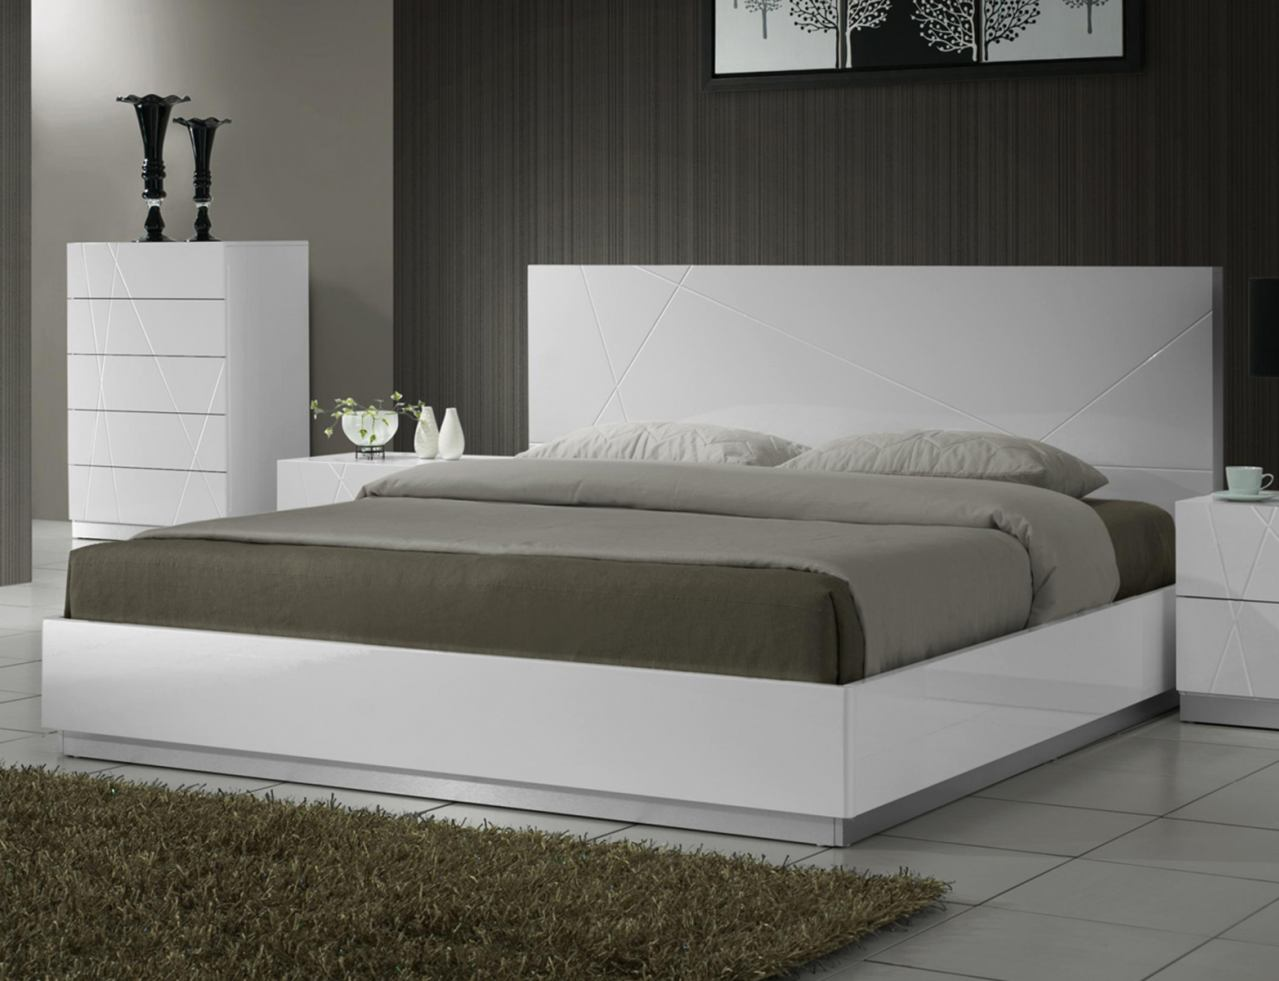 J&M Naples King Platform Bed in White Lacquer 17686-K